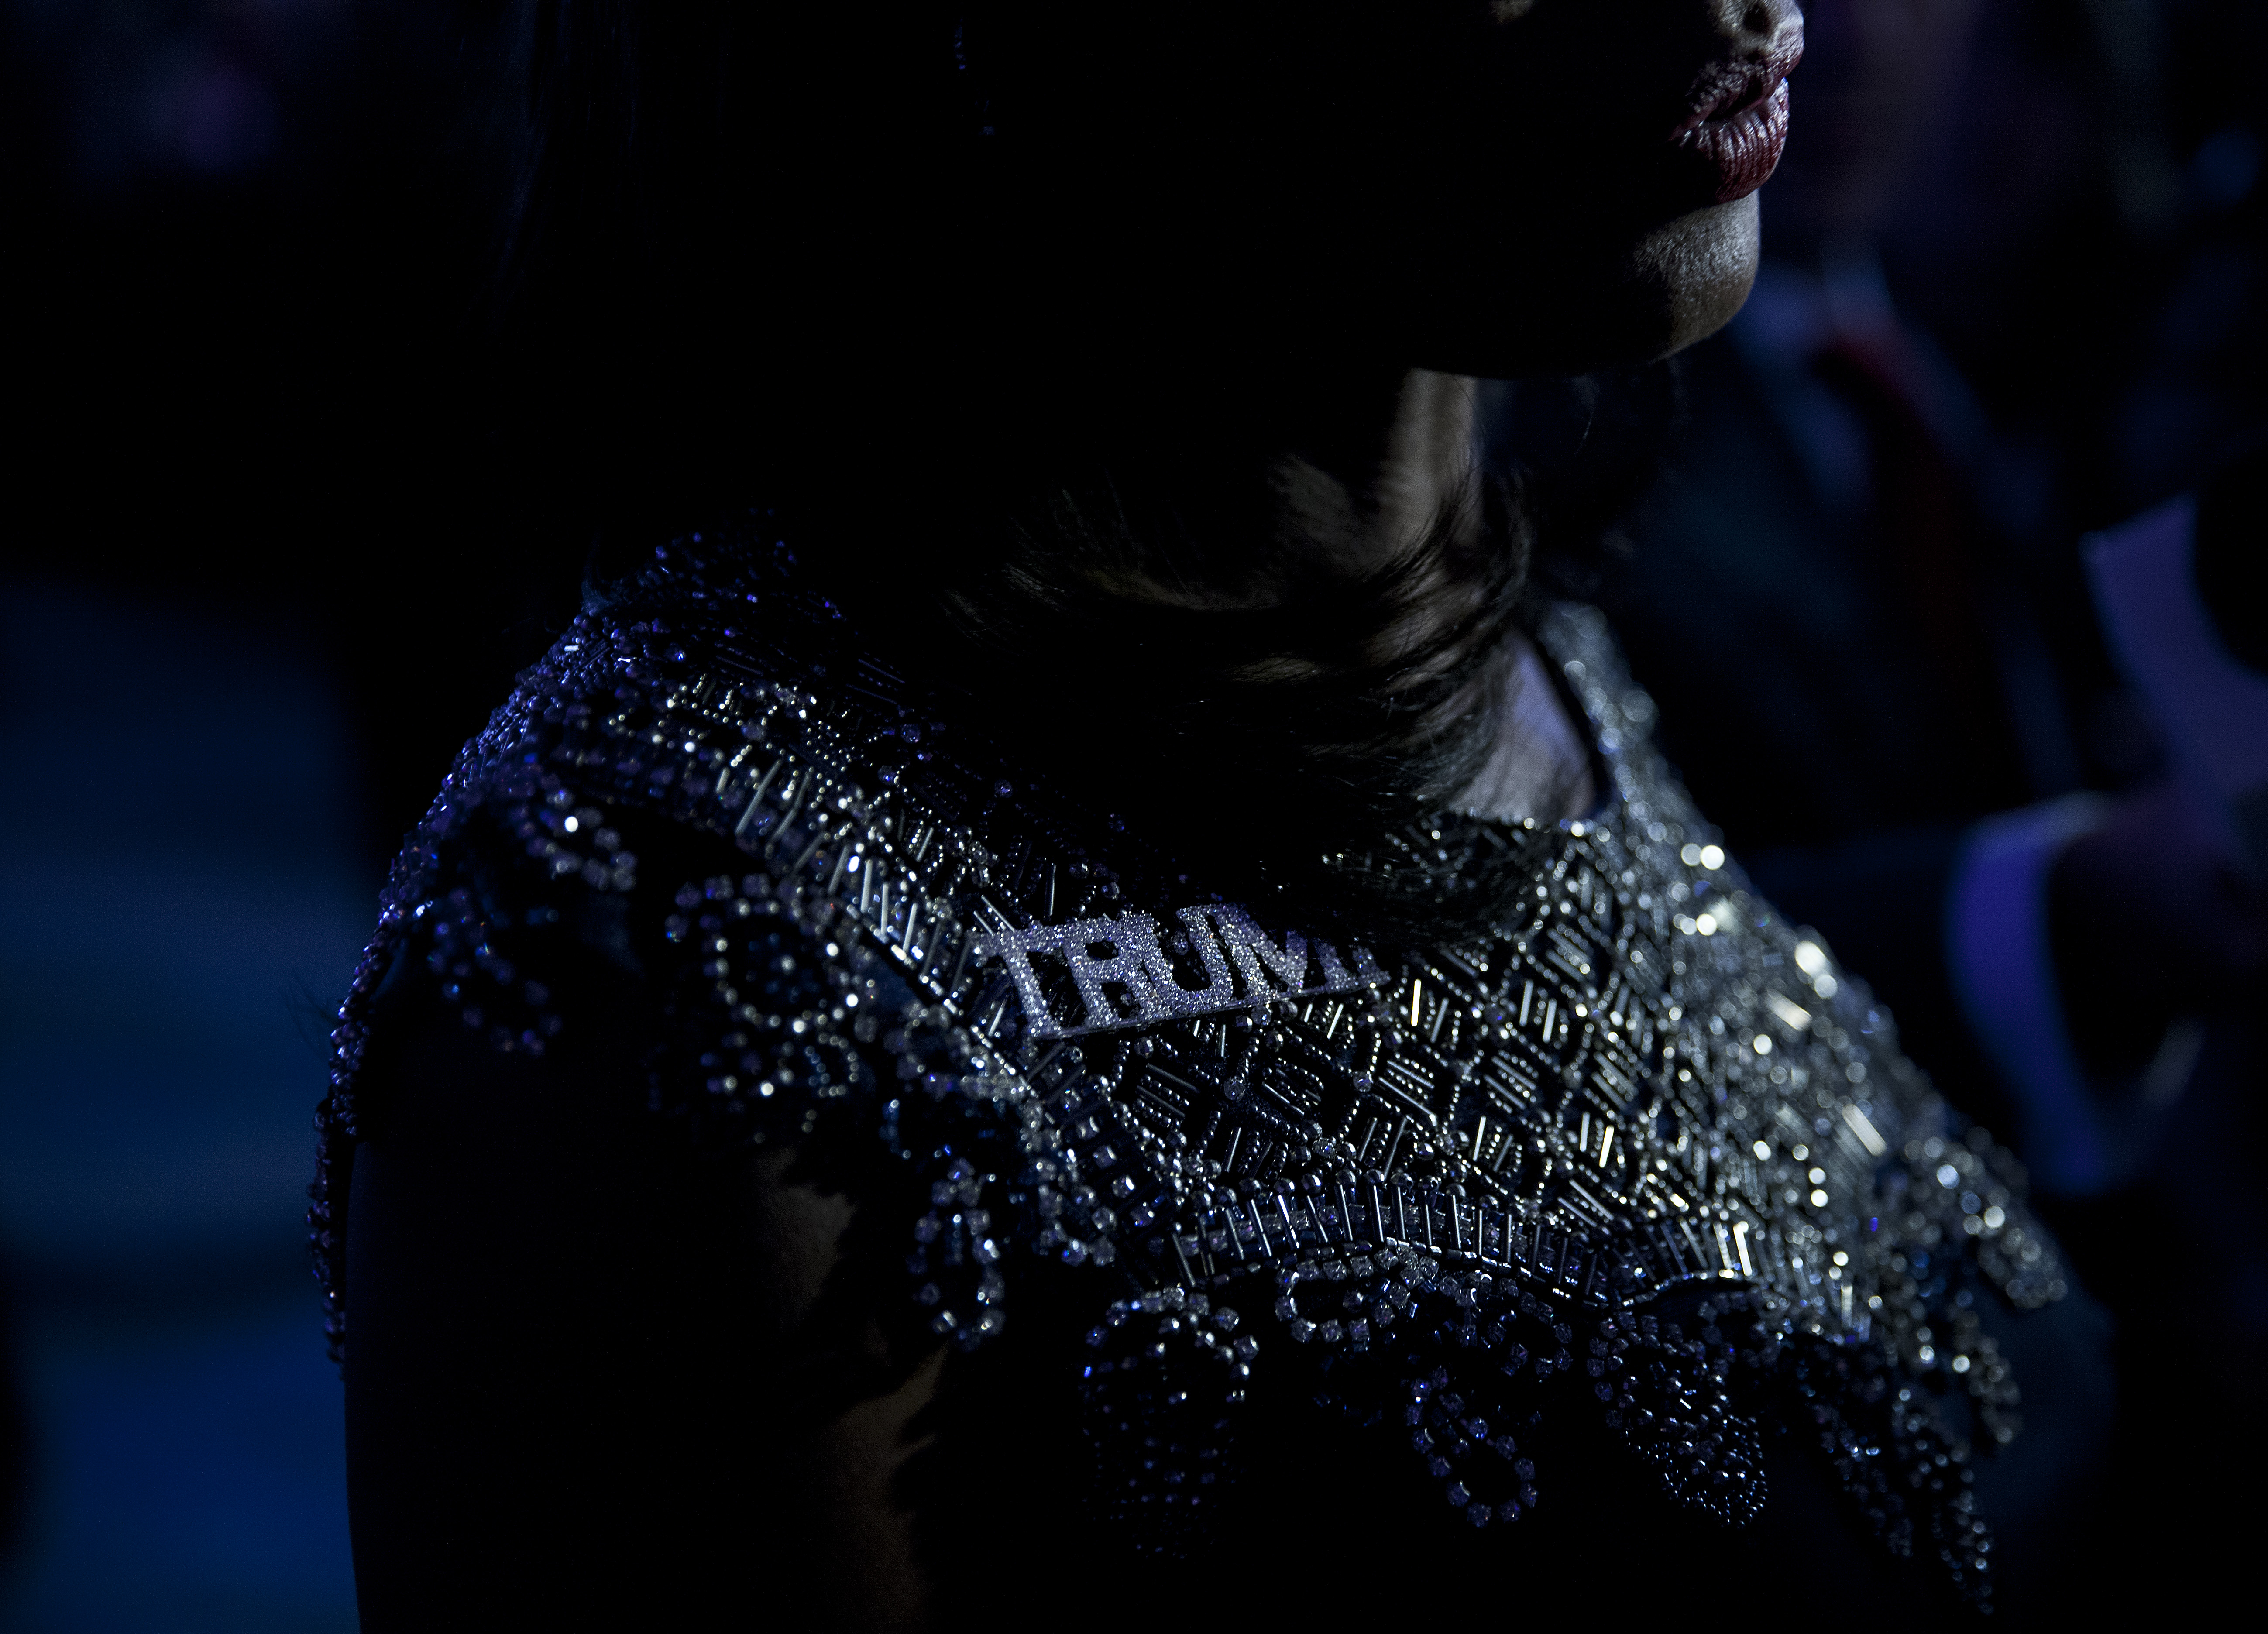 Omarosa Manigault at an election night party for Republican presidential candidate Donald Trump, on Nov. 8, 2016 in New York's Manhattan borough.